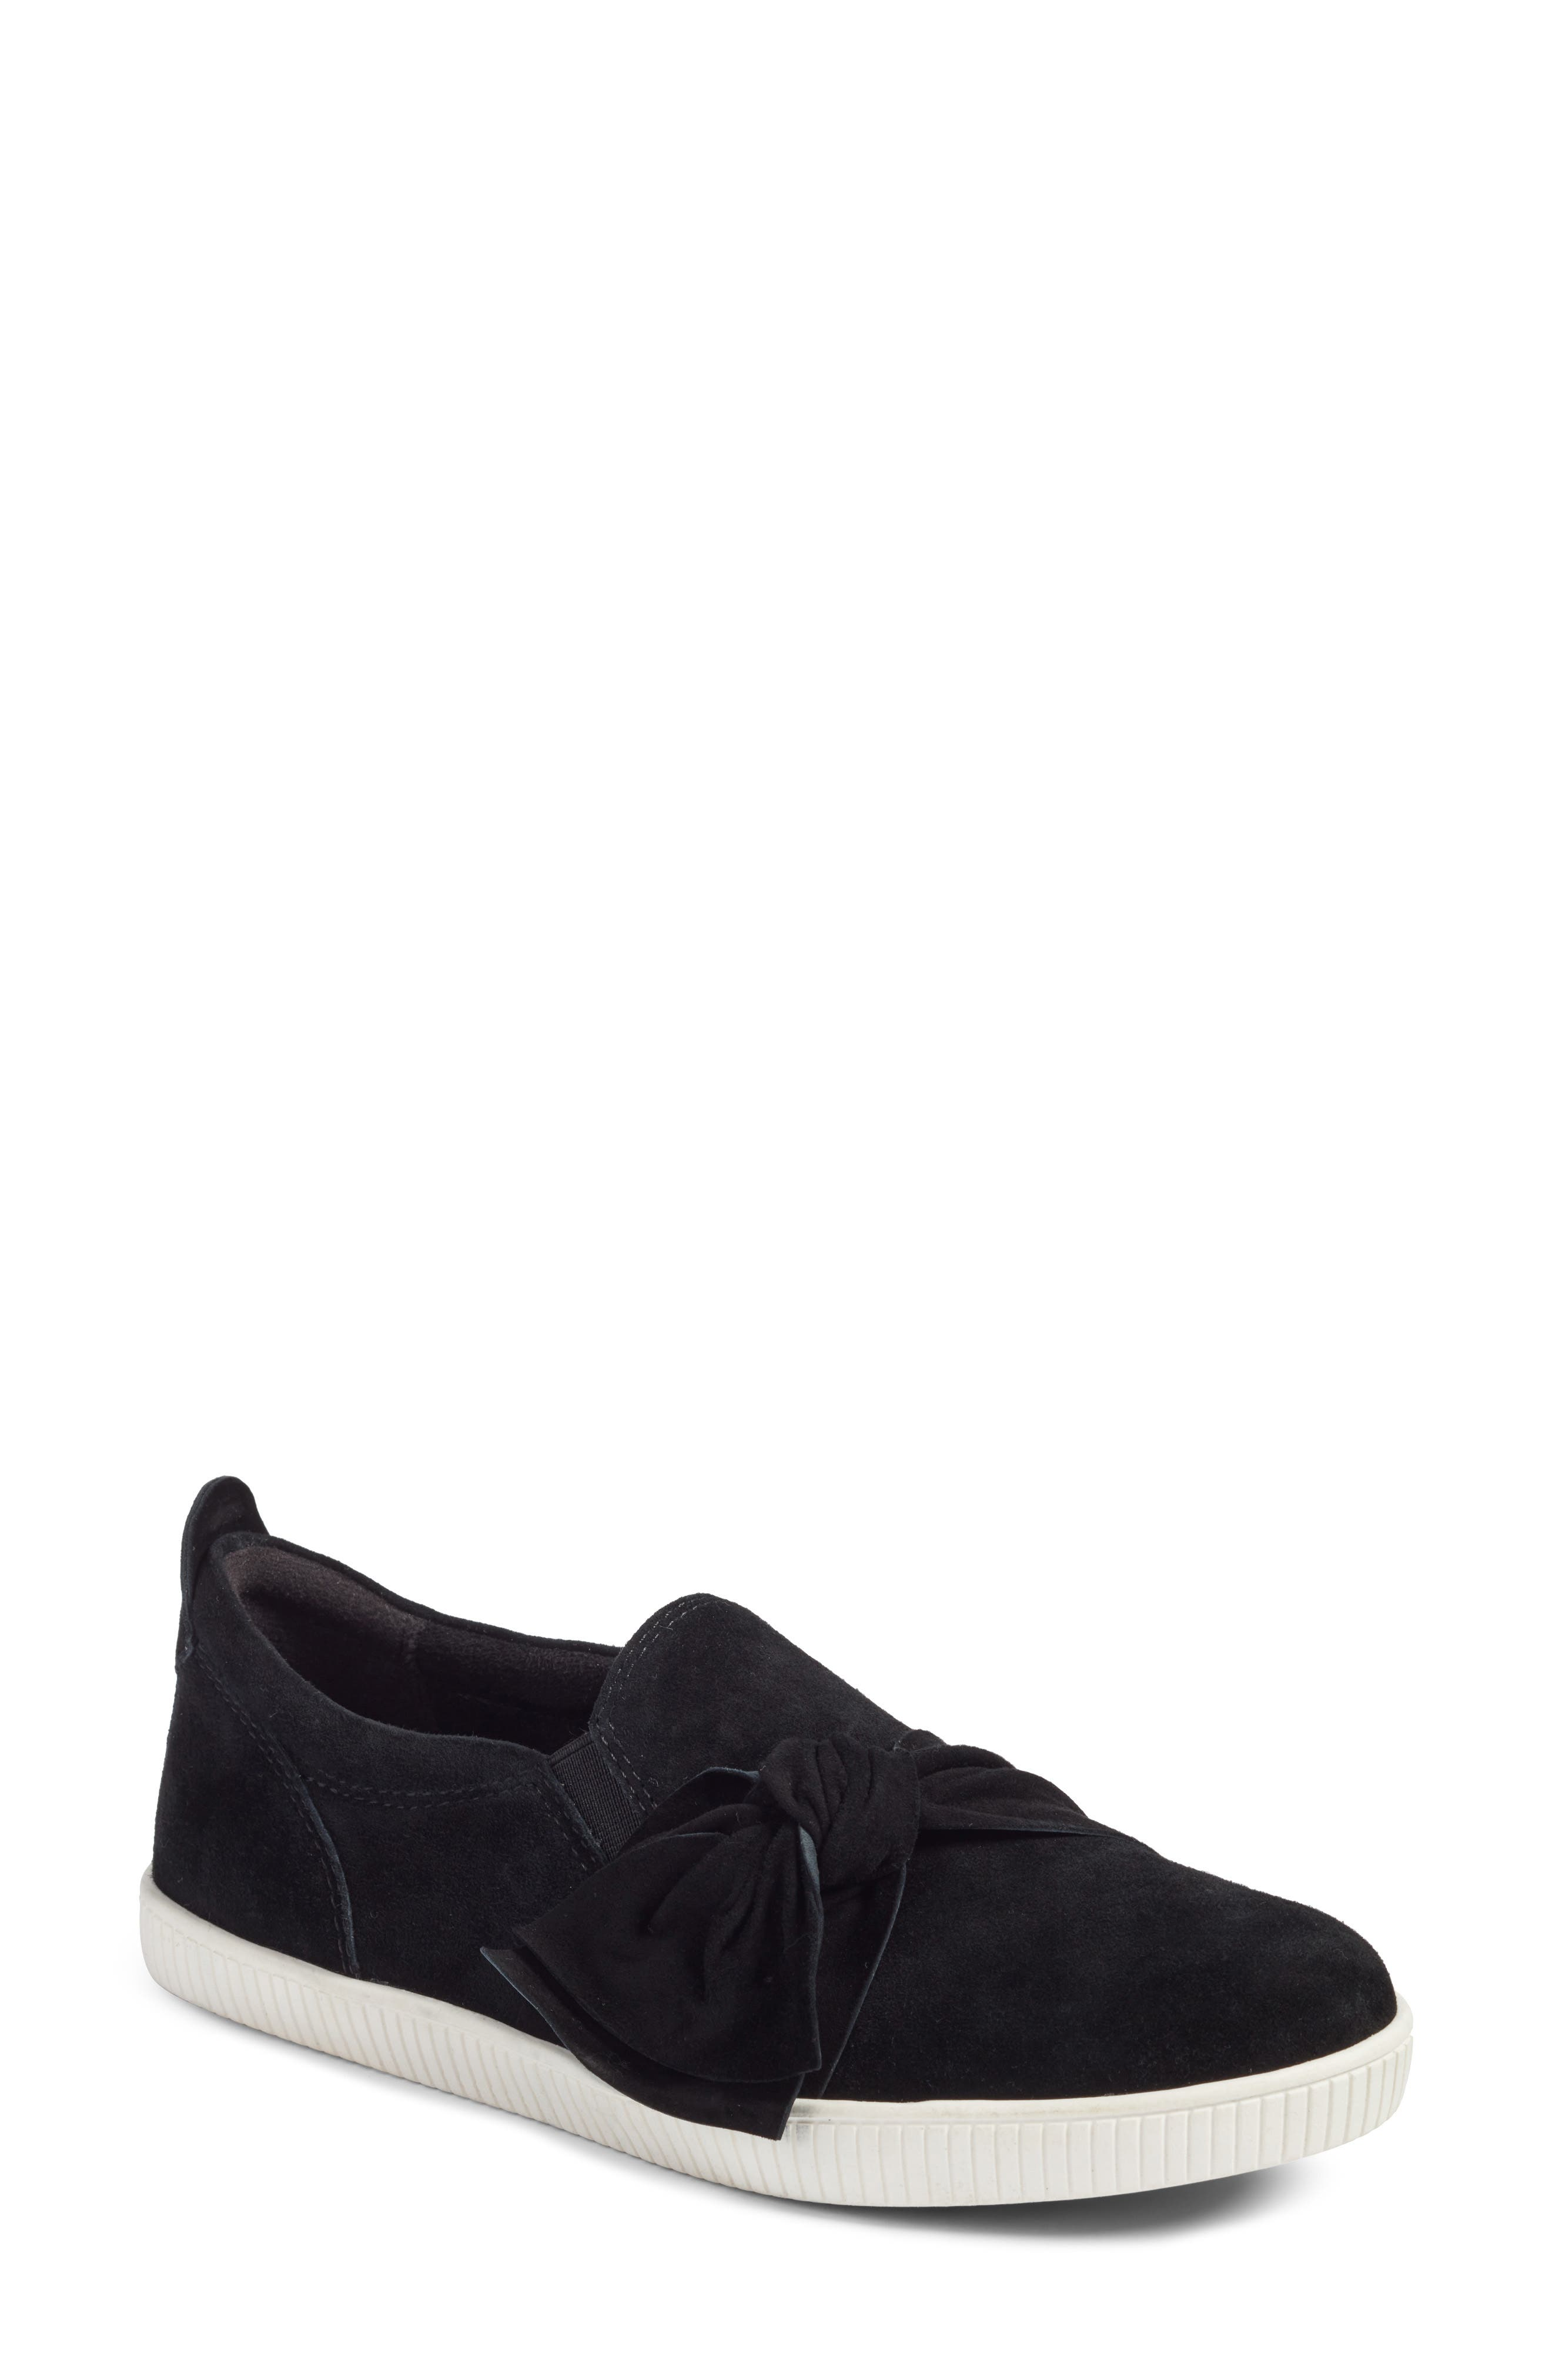 Date Sneaker,                         Main,                         color, BLACK SUEDE